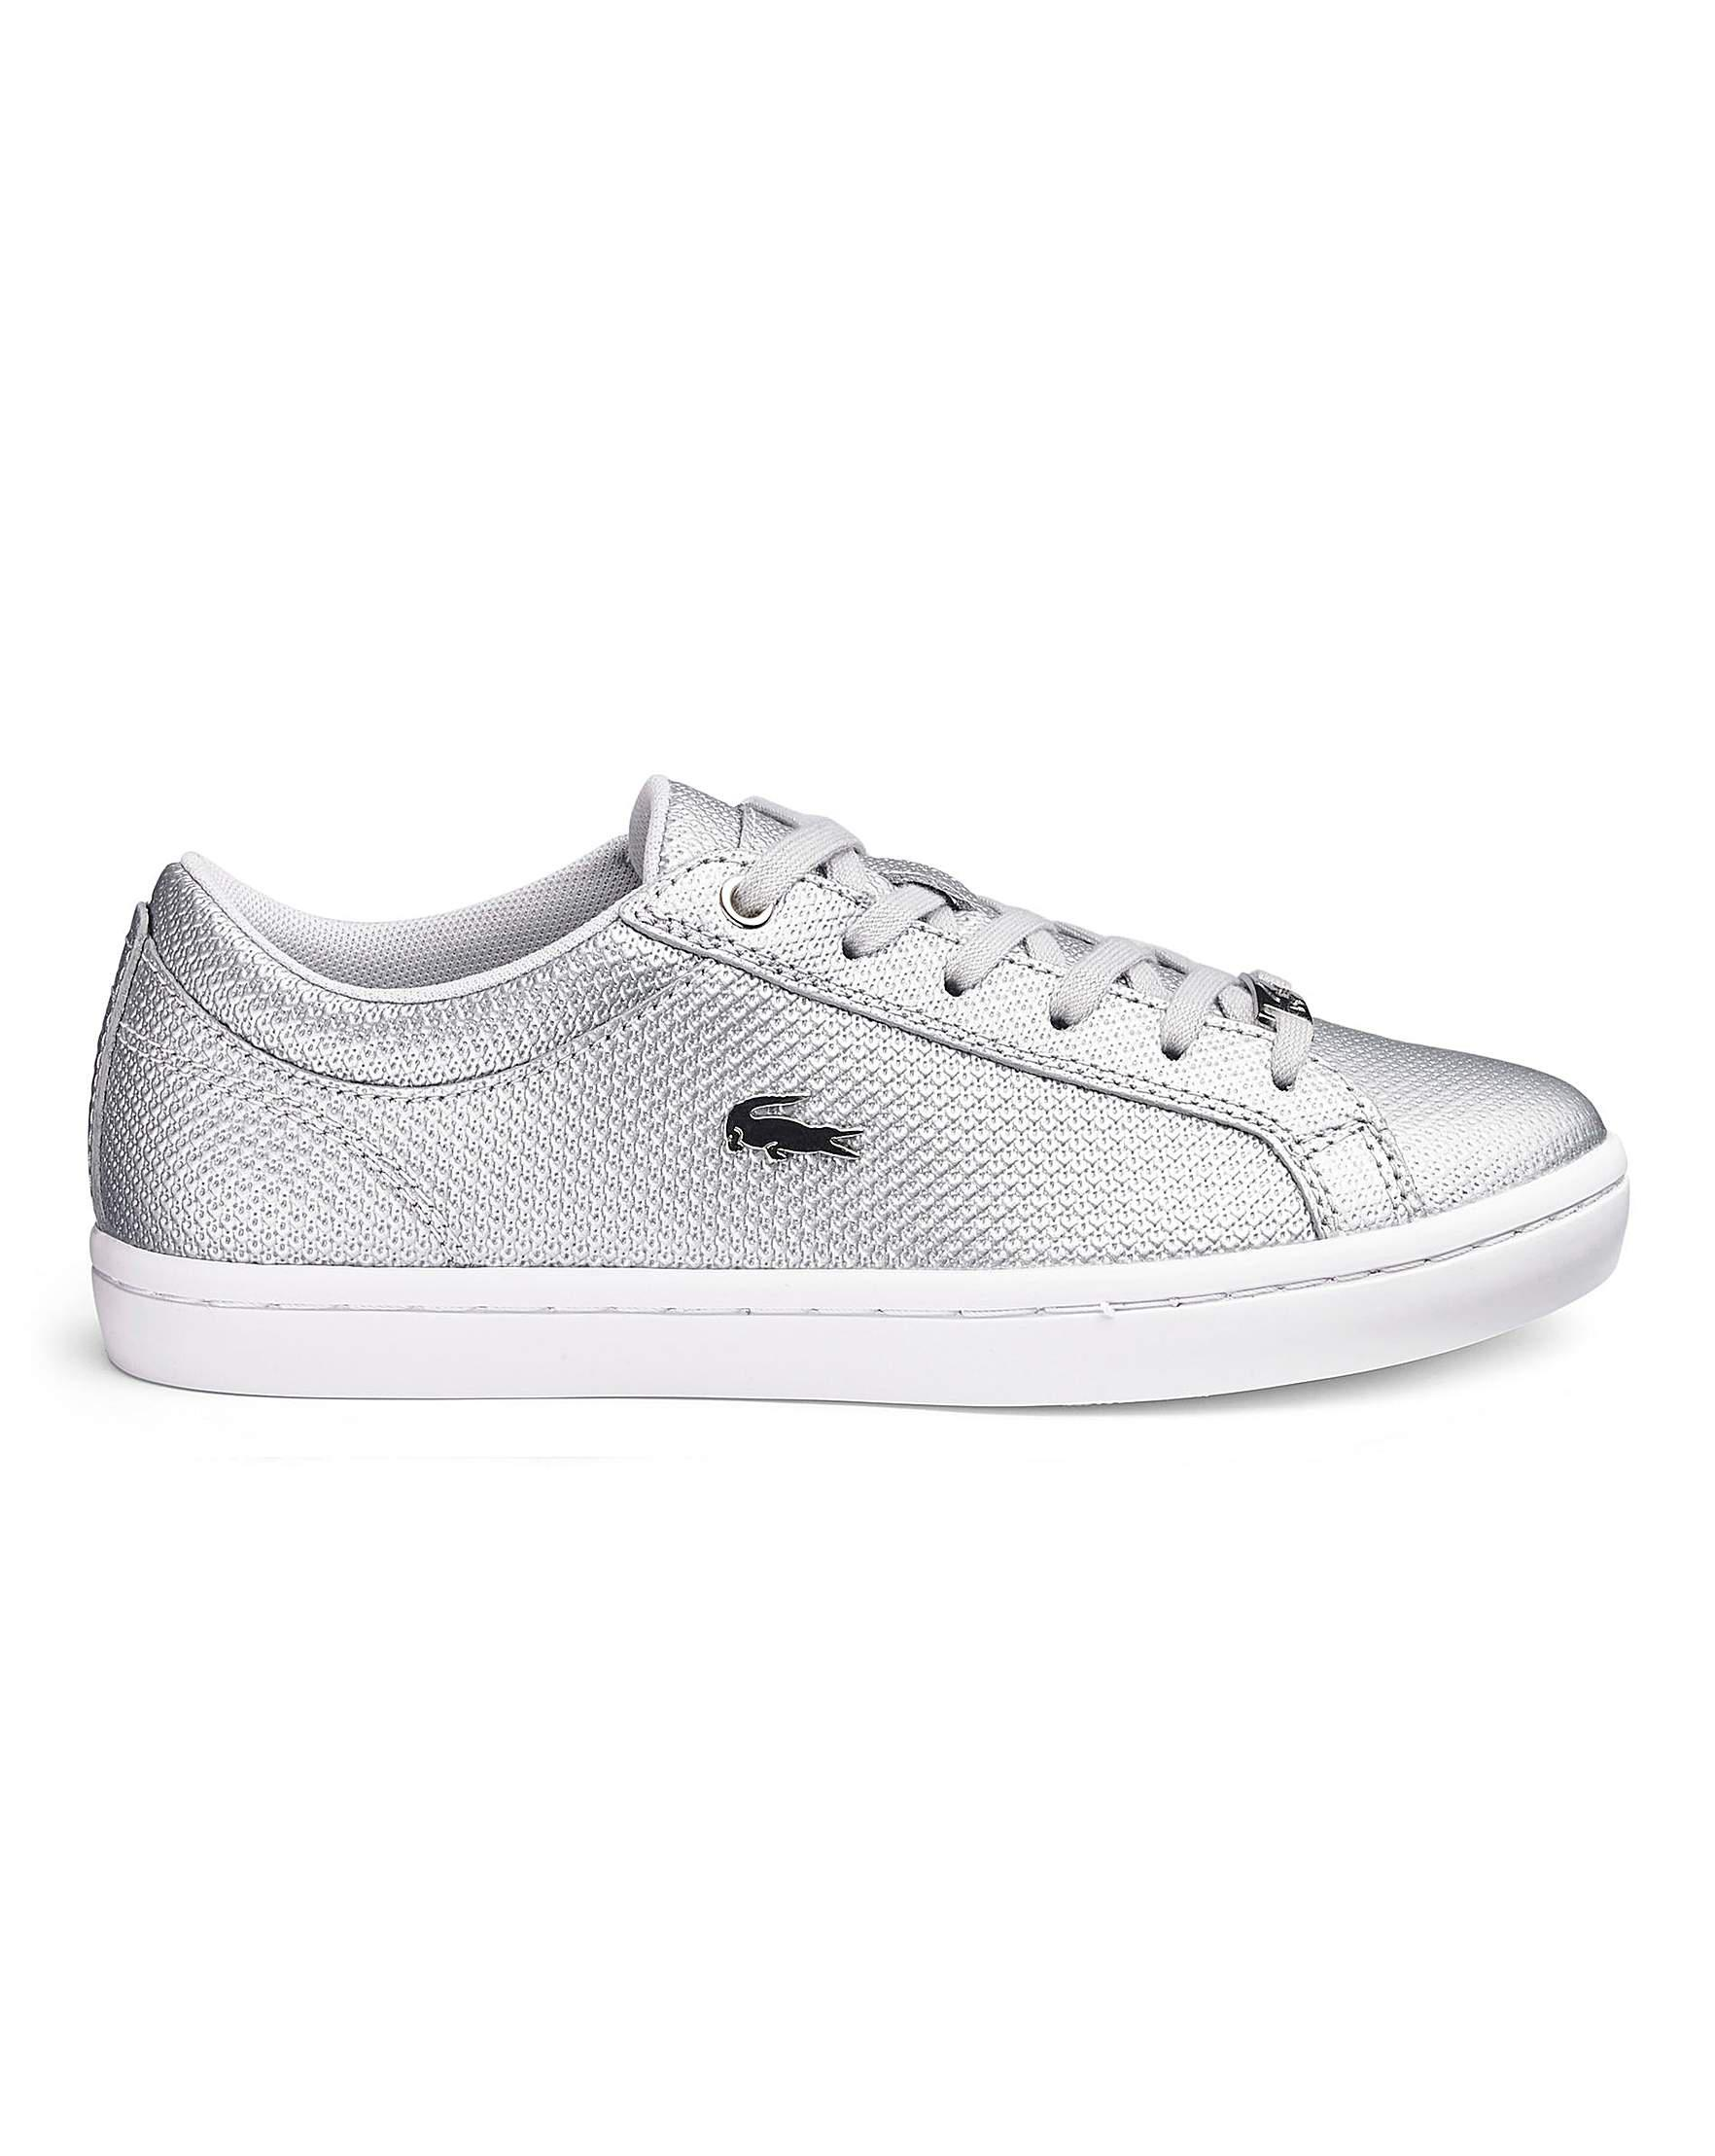 719949d55 Lacoste Straightset Trainers in Metallic - Lyst